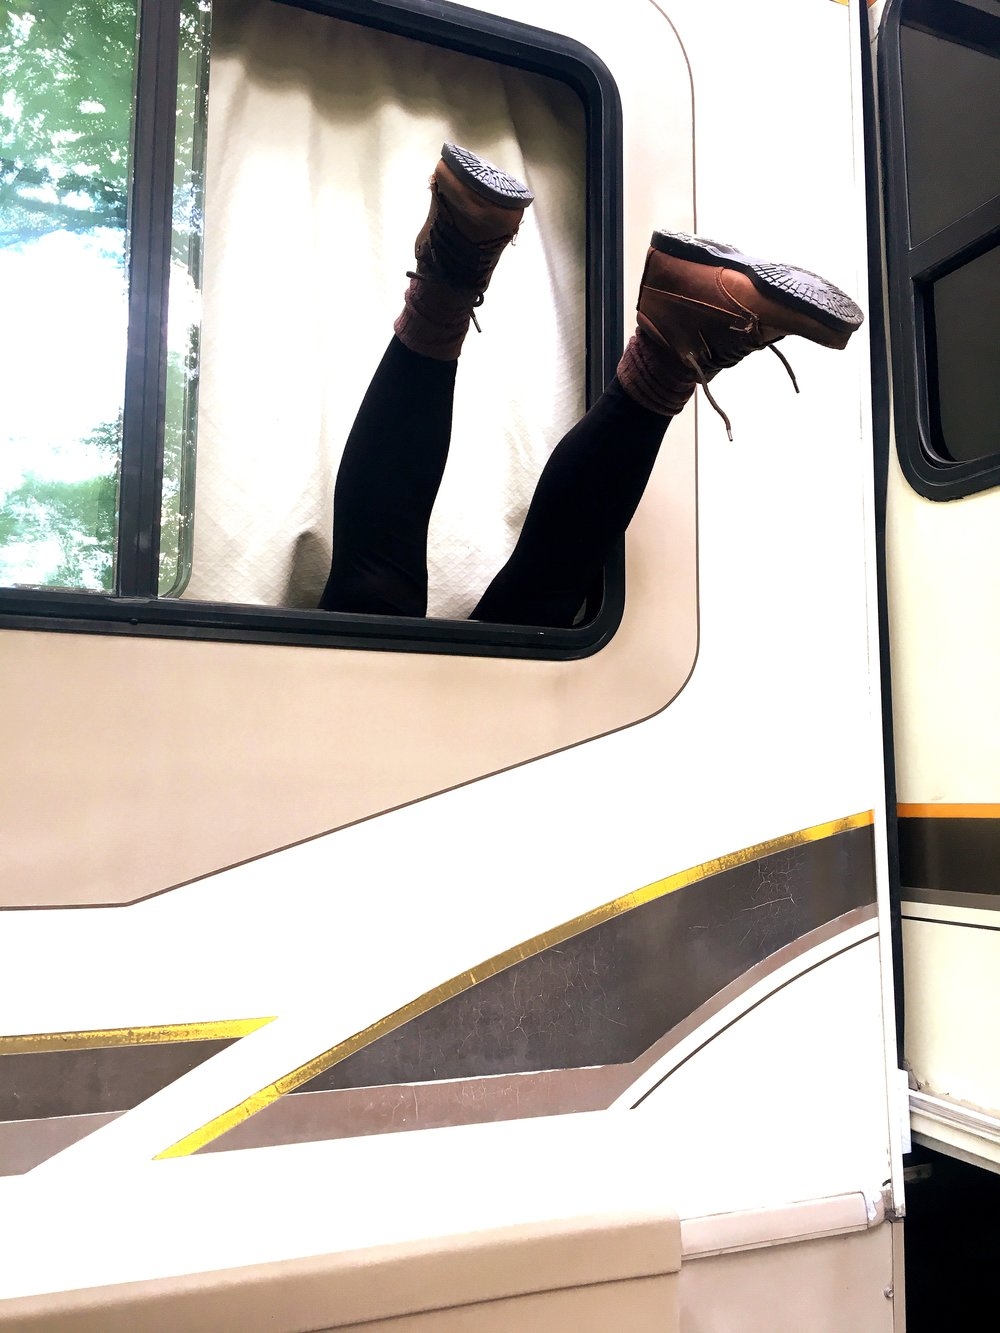 Abrielle heroically climbed in the window of our RV after getting locked out.